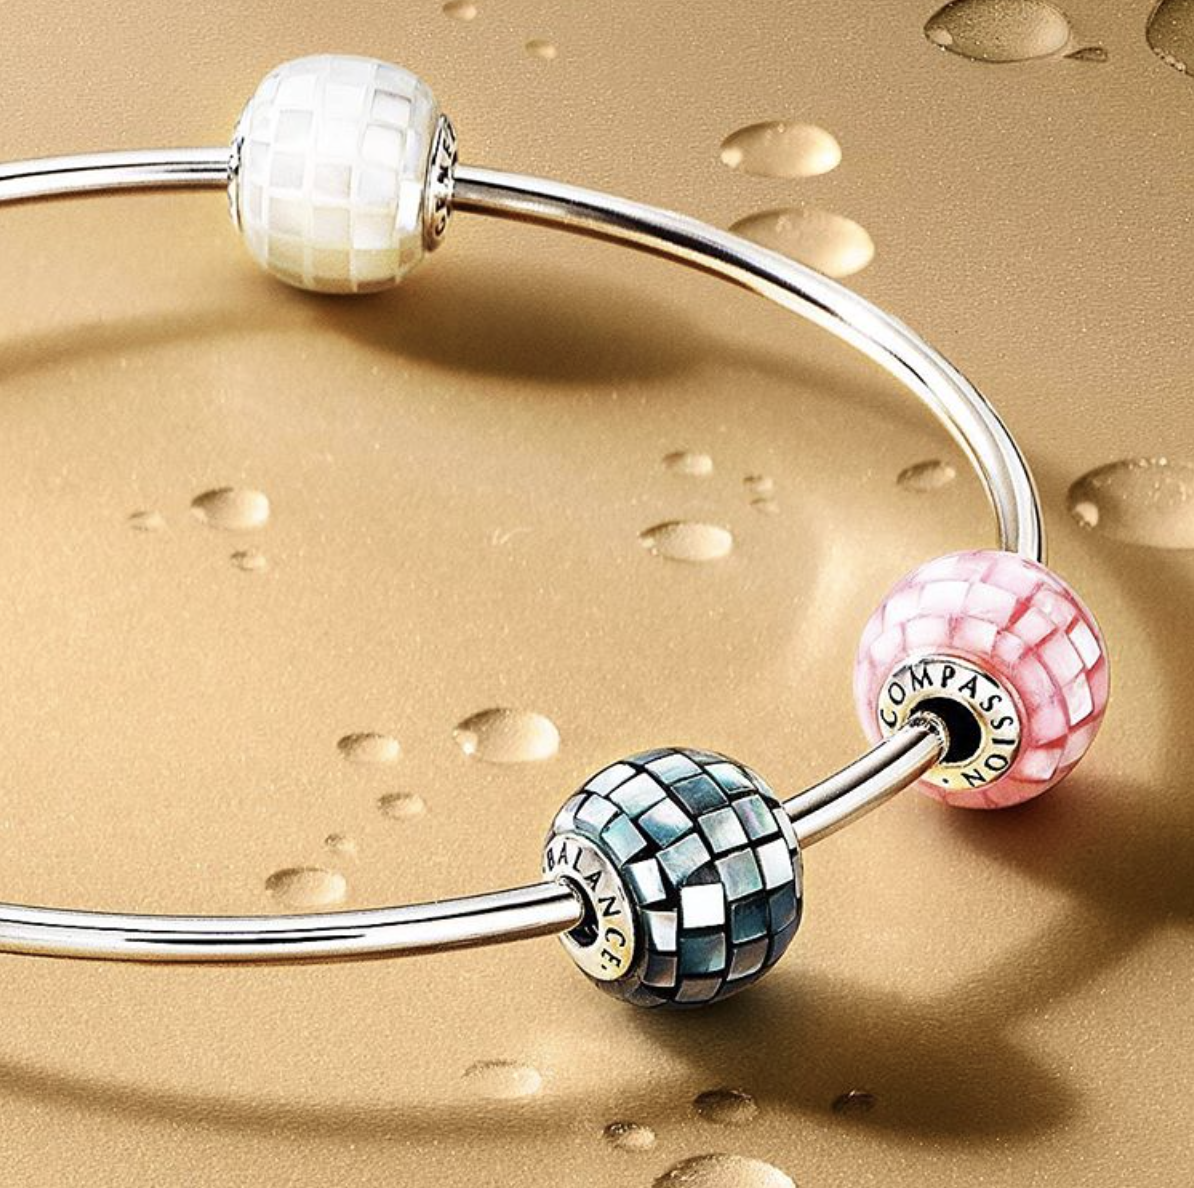 ccf313592 Pandora's new Essence Mosaic Mother of Pearl charms have arrived. Visit us  to see the new Compassion, Generosity and Balance.